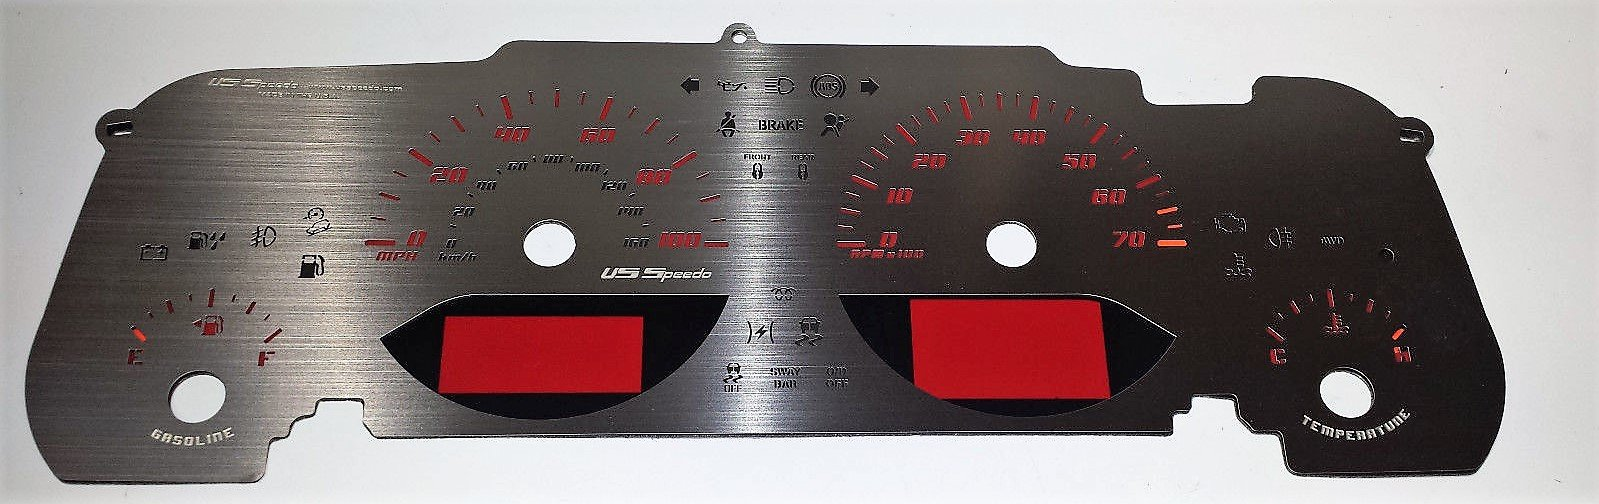 US Speedo STAINLESS STEEL JEEP WRANGLER RED COLOR BAND GAUGE FACE FOR 2008-2013